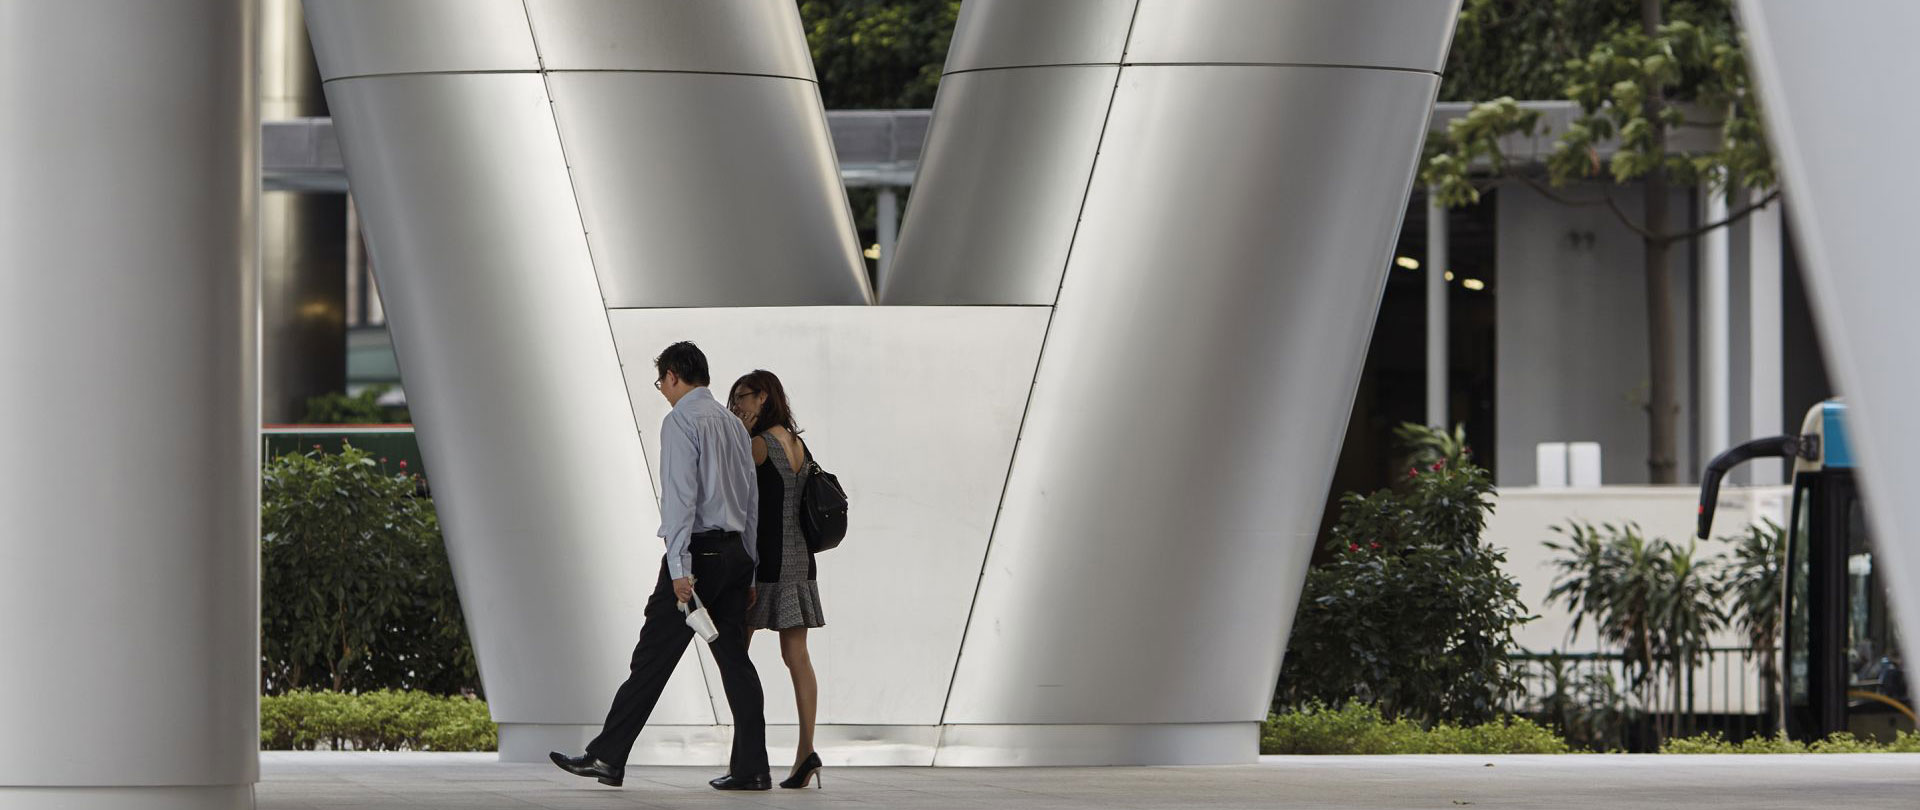 Image of people walking next a large building in London